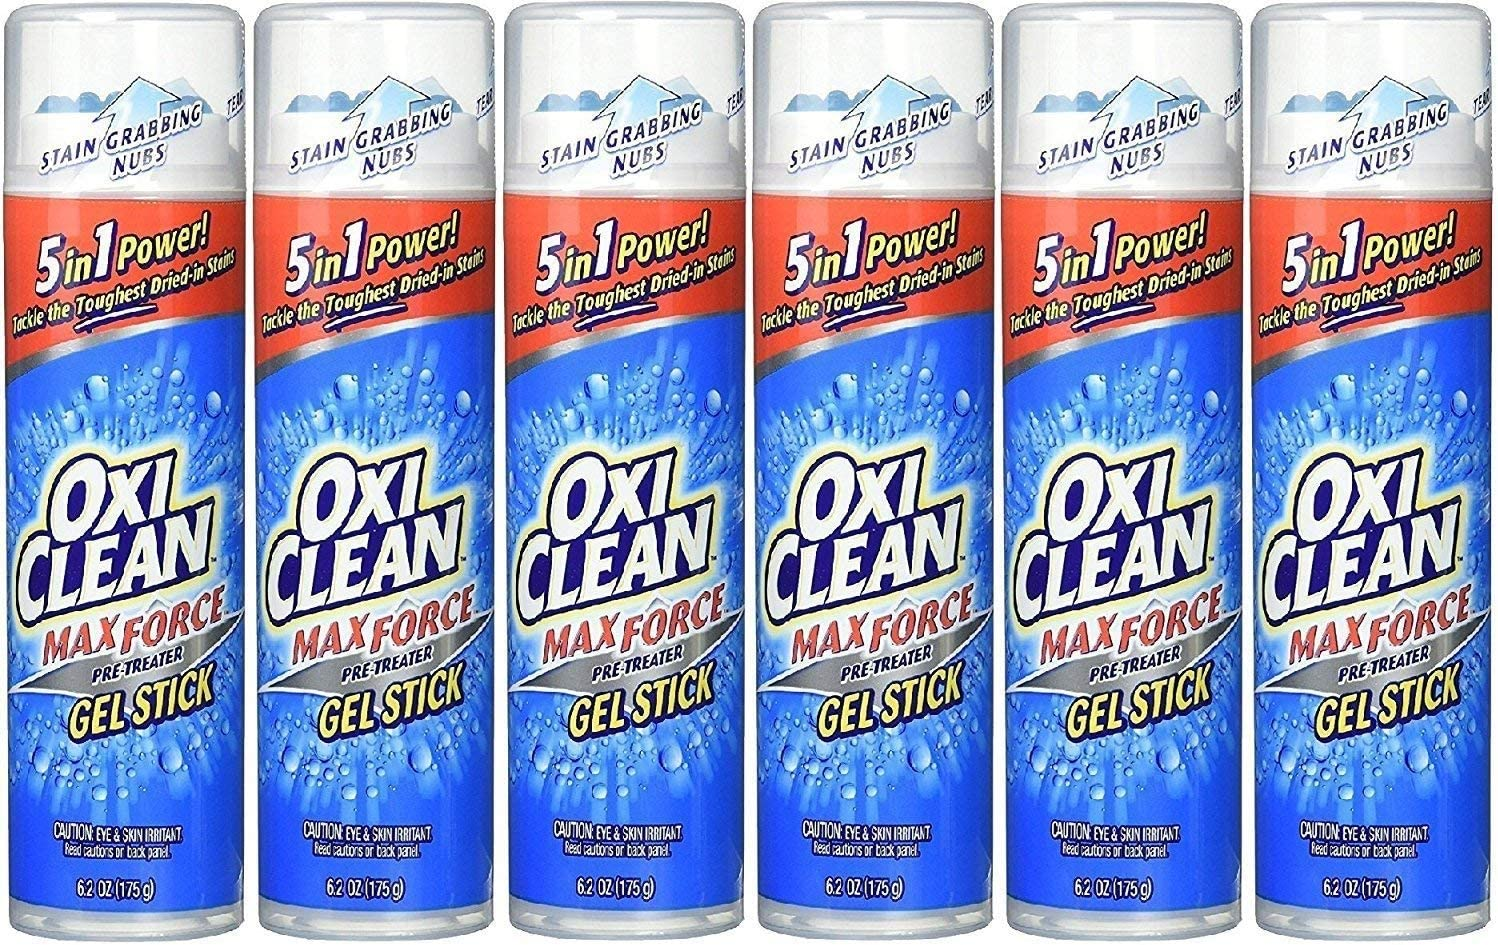 OxiClean Max Force Gel Stick, 6.2 Oz (6 Pack)